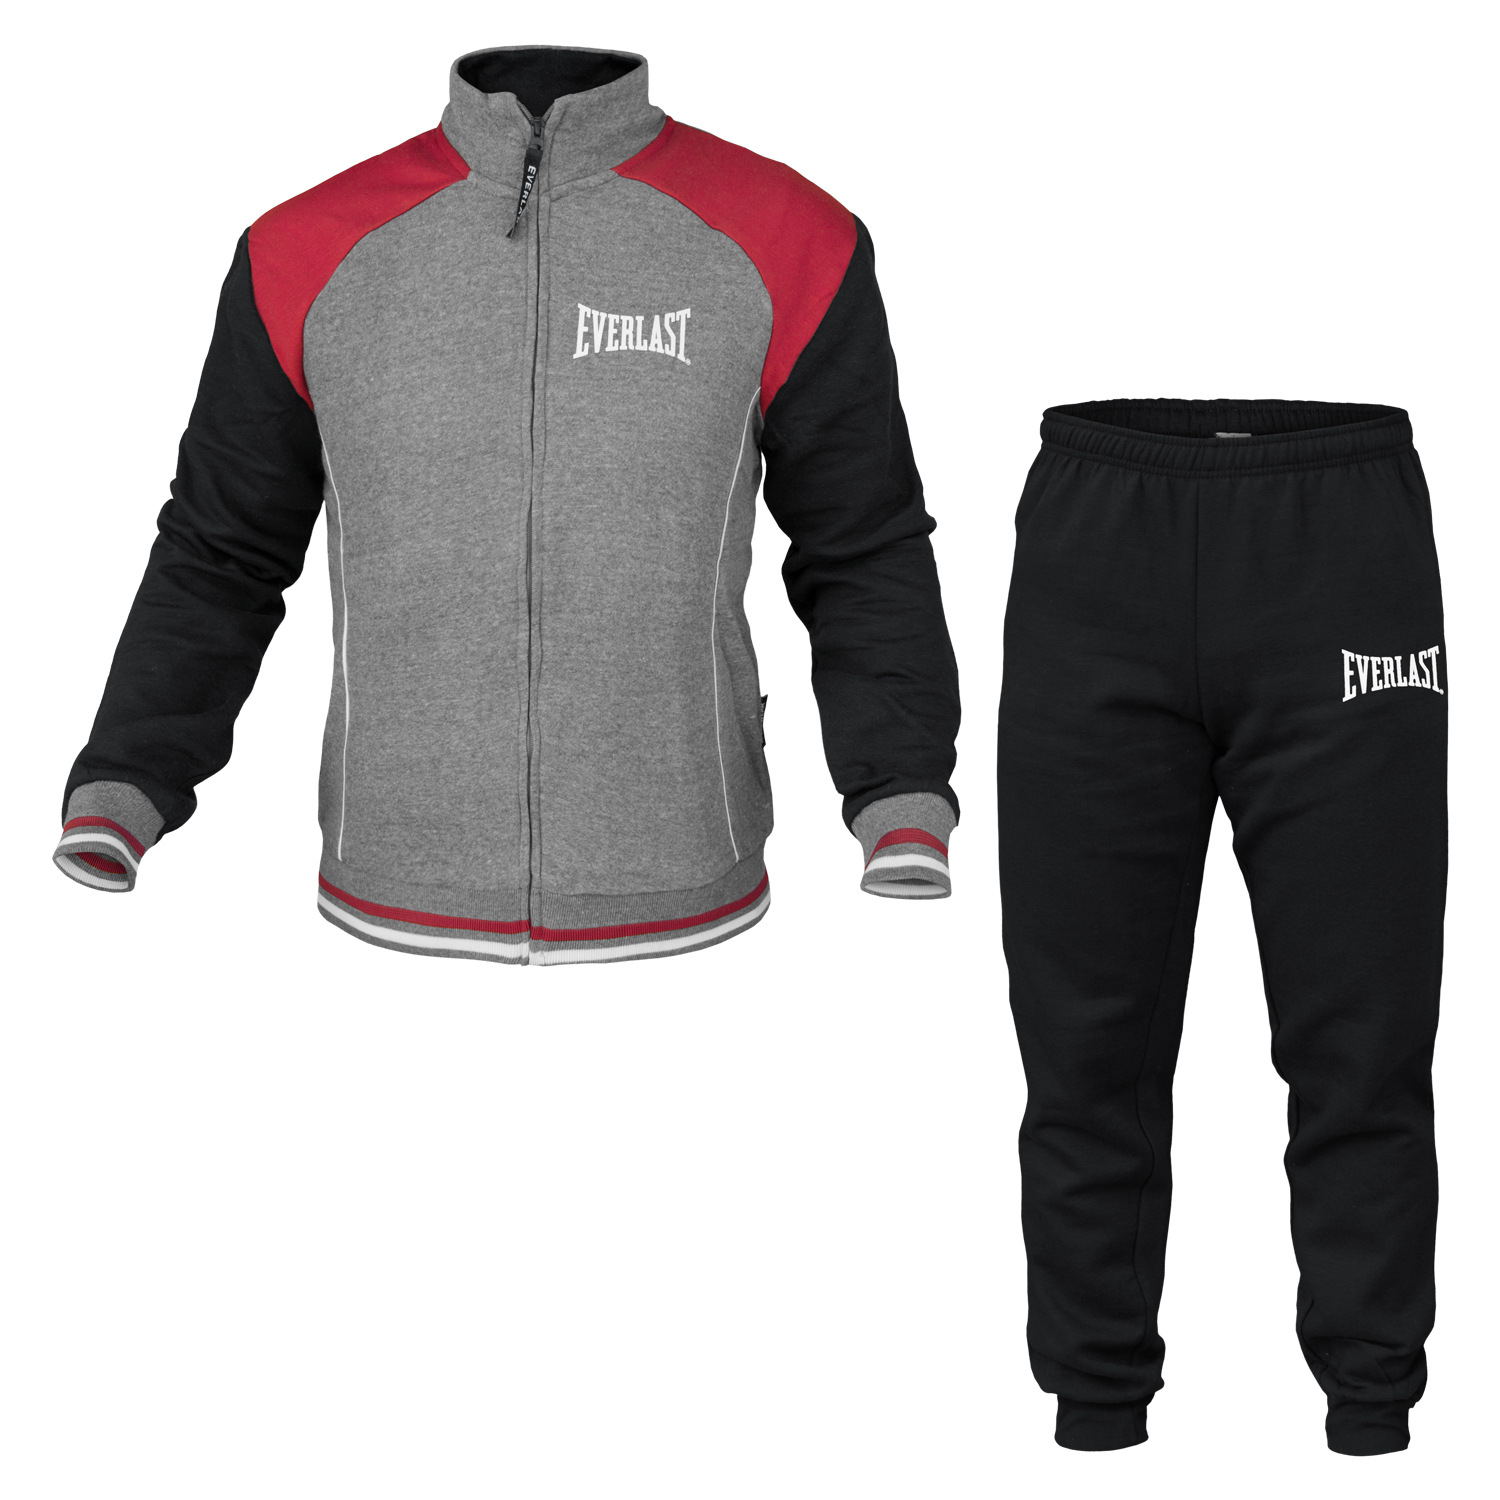 Tuta-Homewear-Uomo-EVERLAST-Cotone-Felpato-Full-Zip-Art-31005